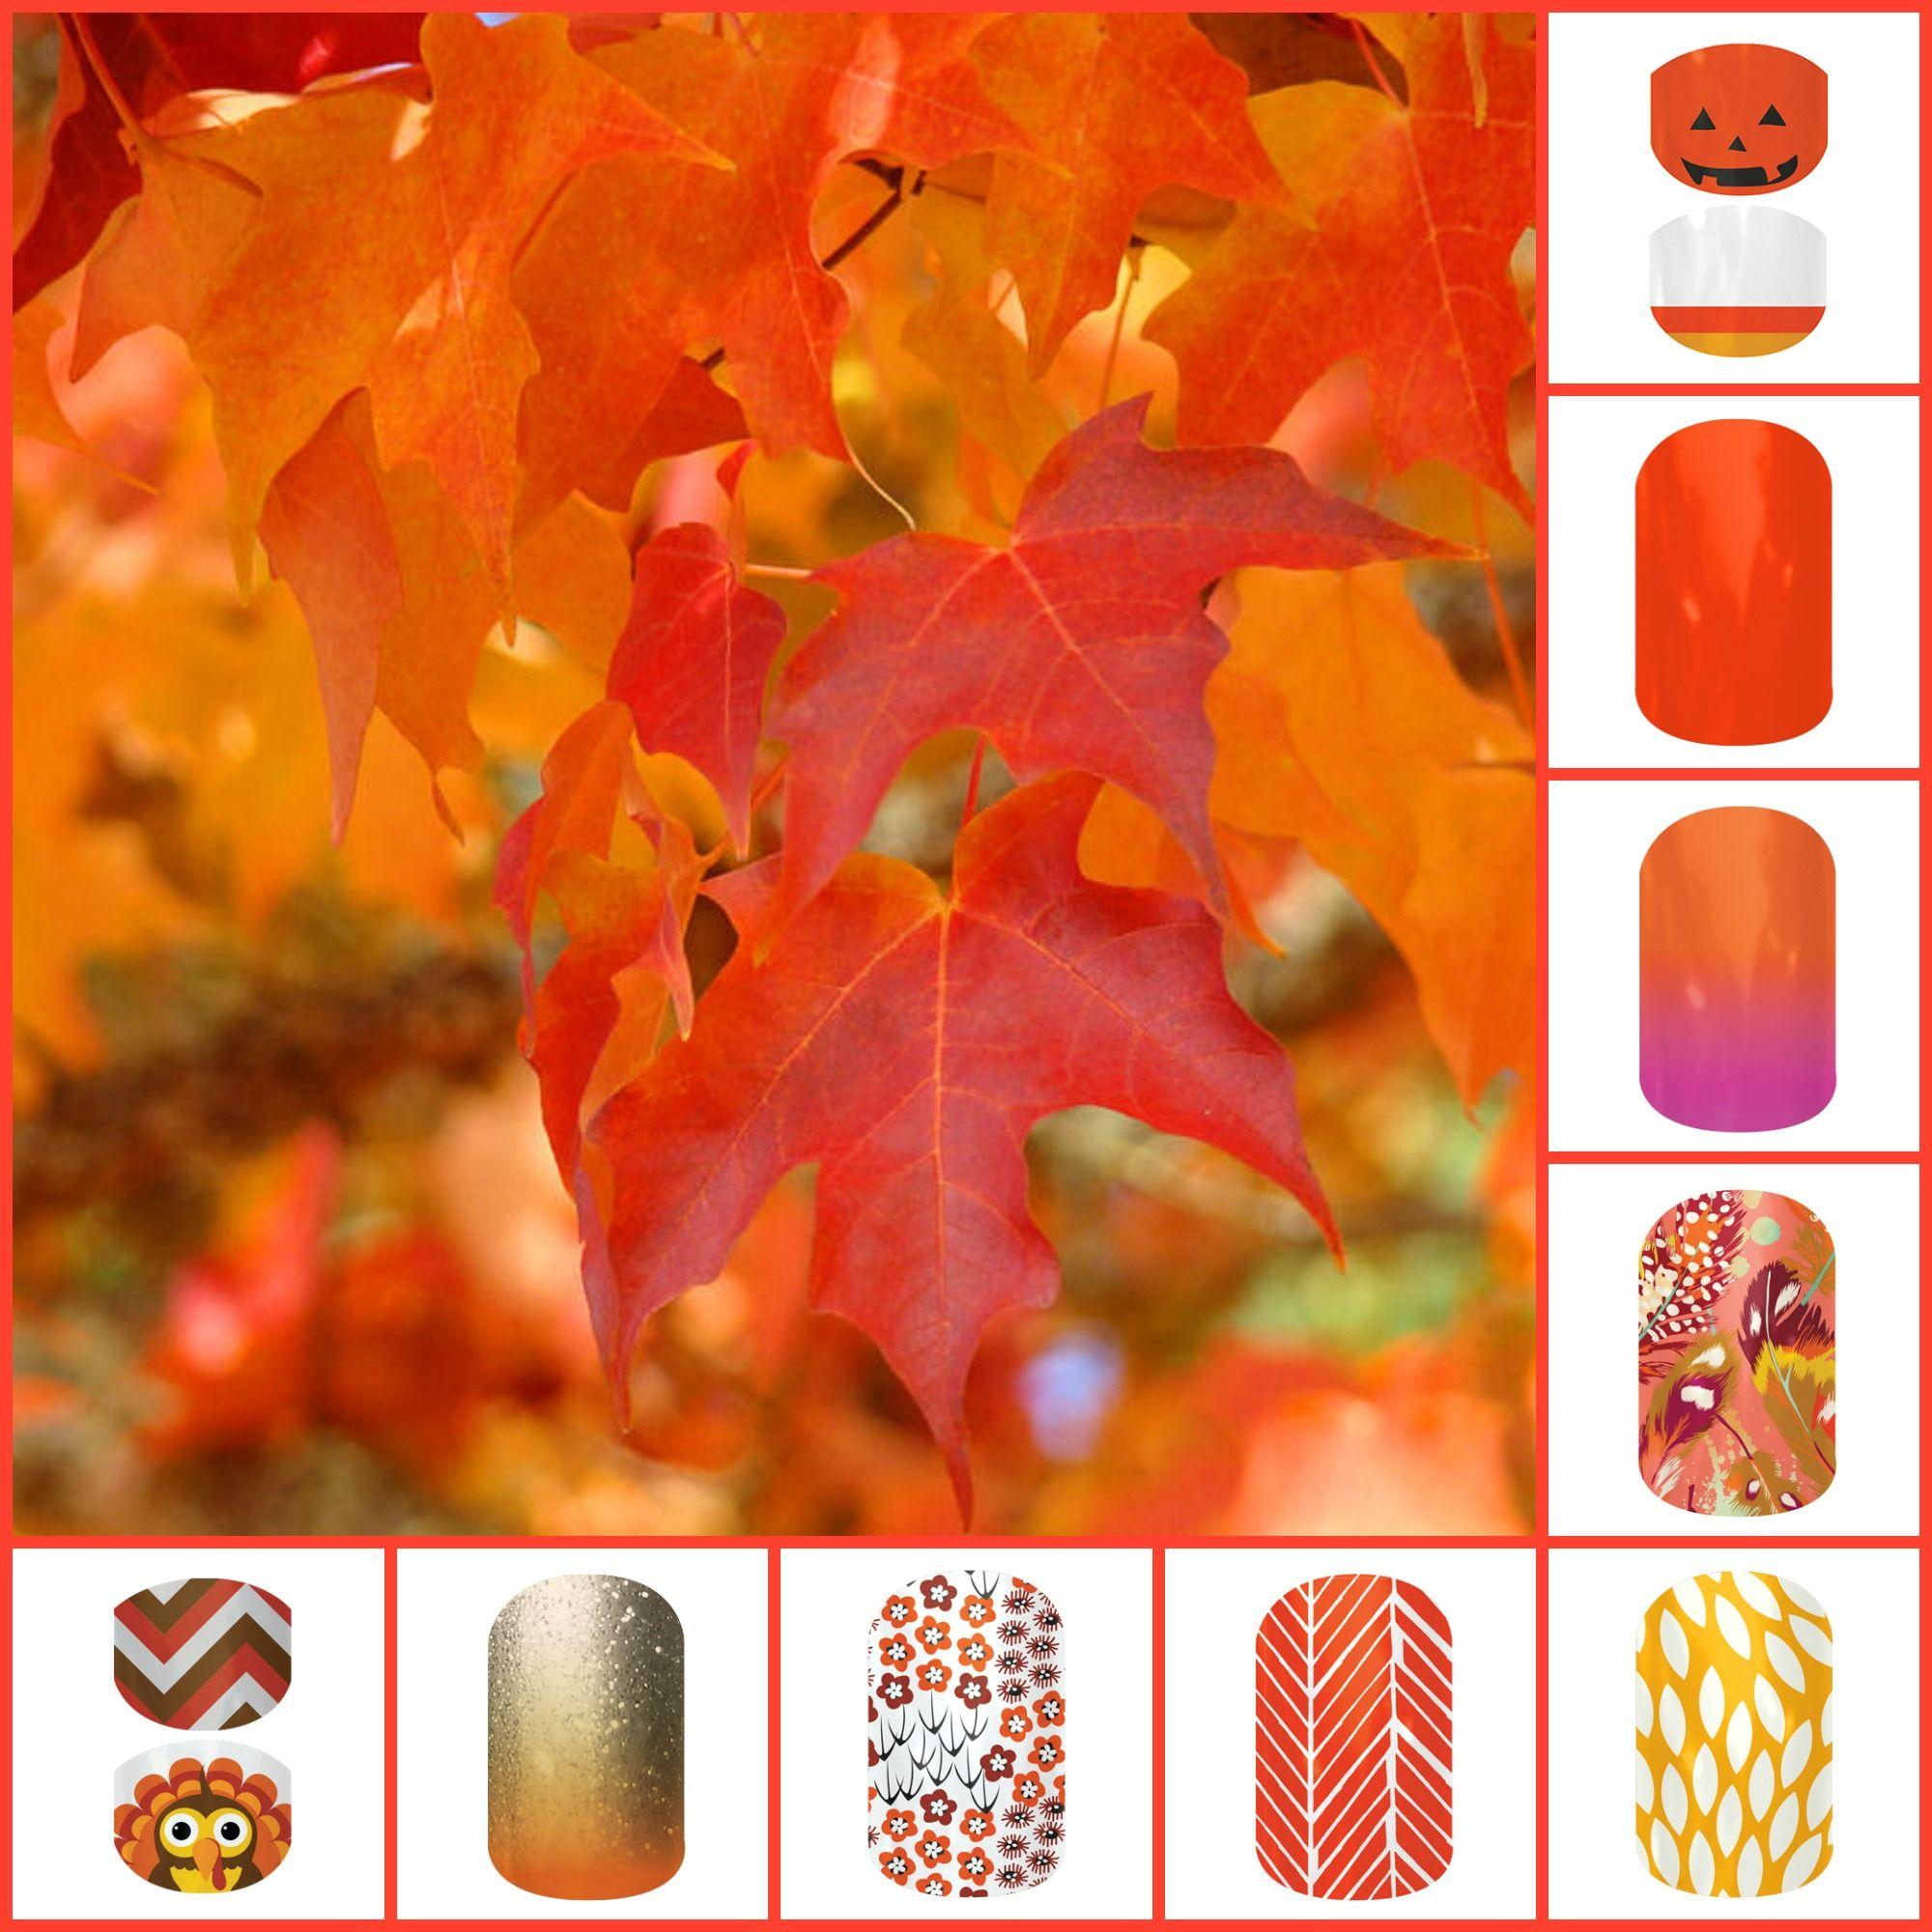 Charming Fruit Punch Tree Part - 14: Fall Tree Leaves Art Prints Orange Red Autumn By Baslee Troutman